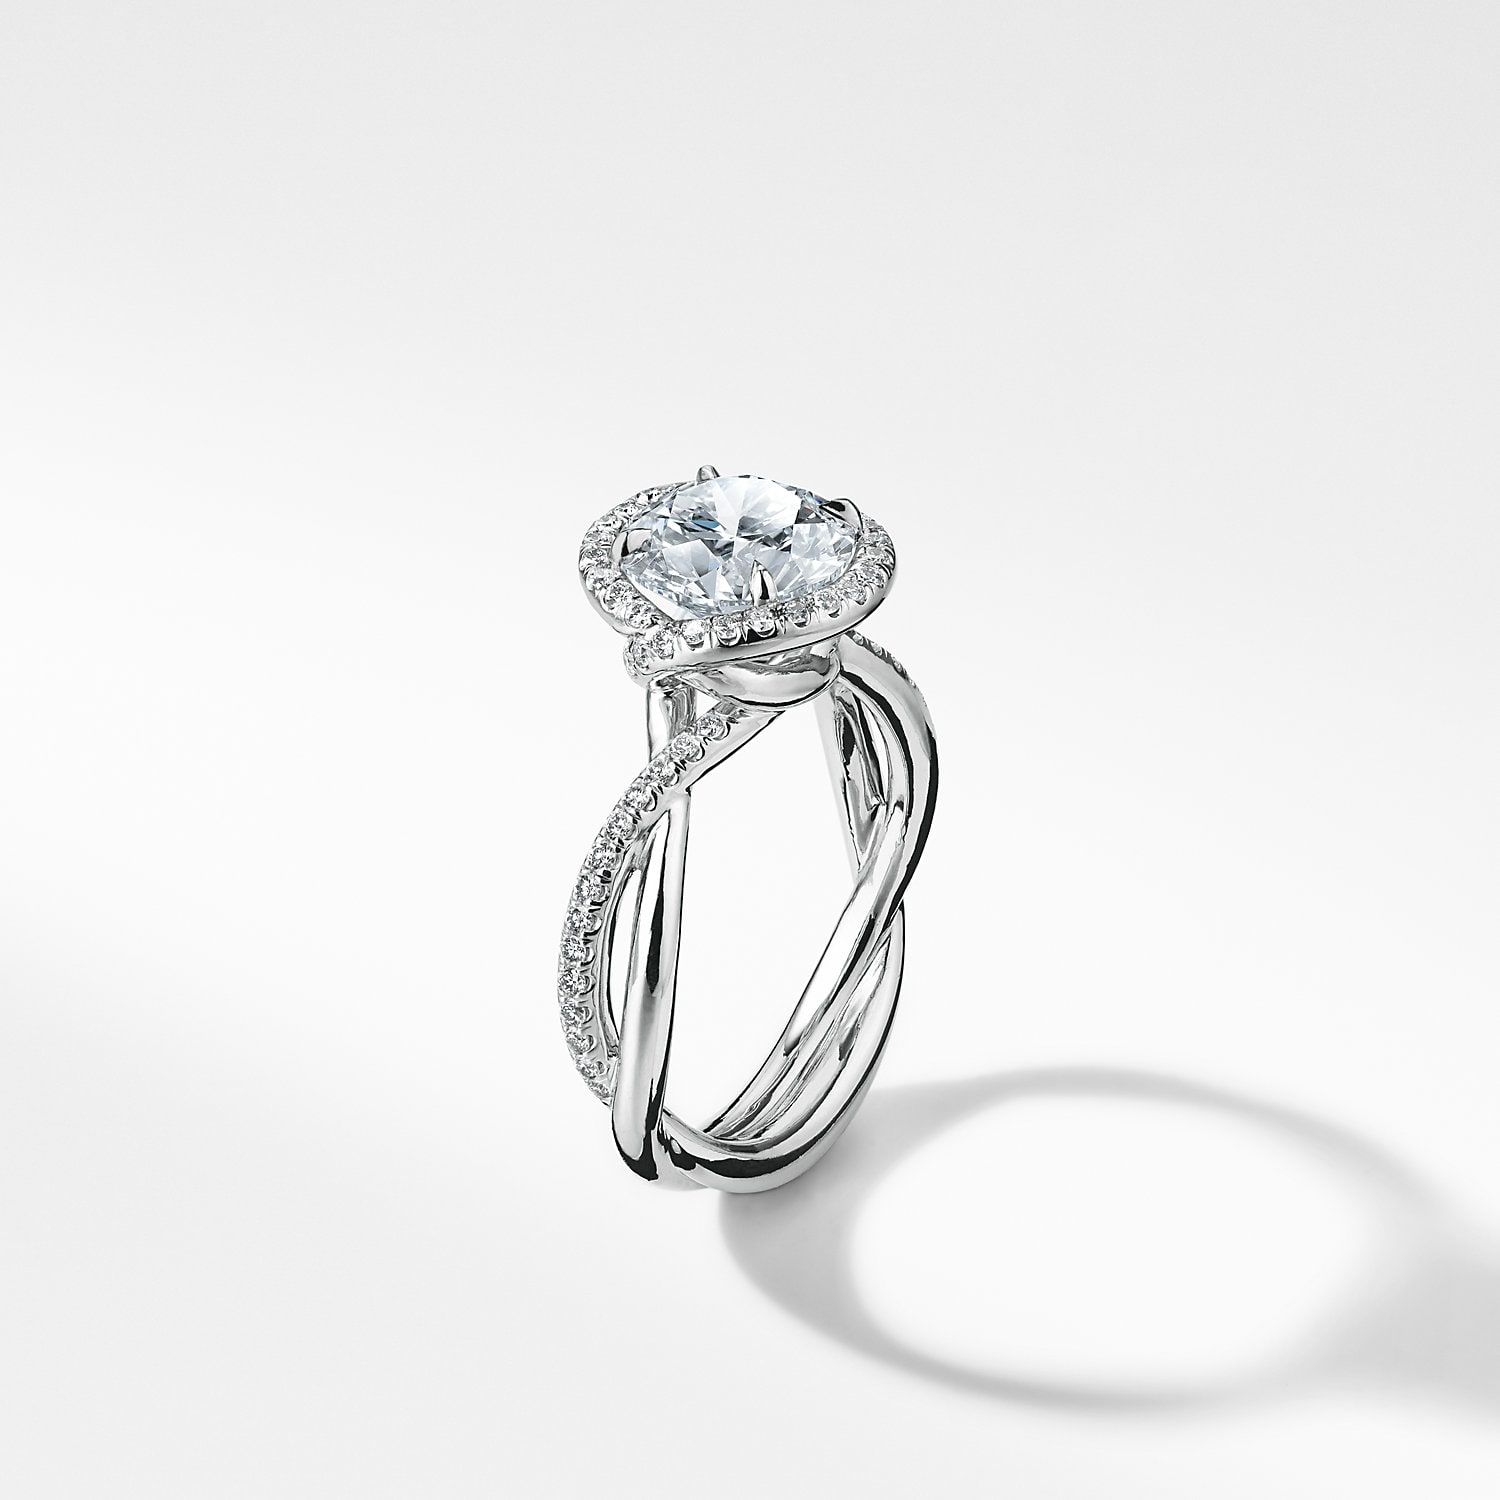 18a4bdb534875 David Yurman: DY Lanai Engagement Ring with Diamonds in Platinum ...